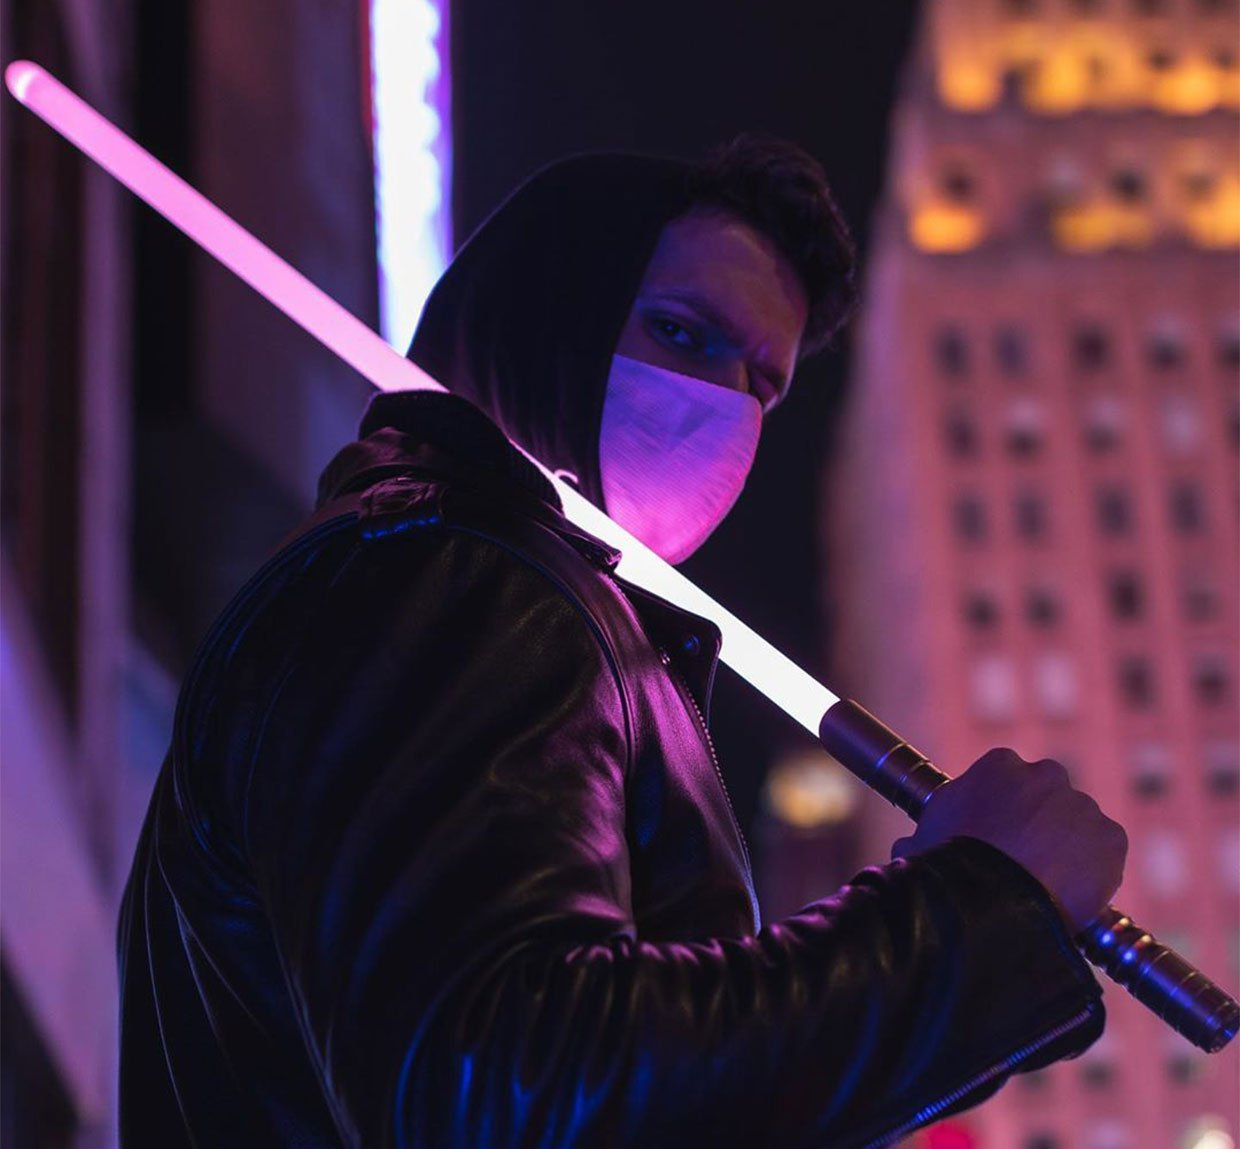 CyberSaber Swords